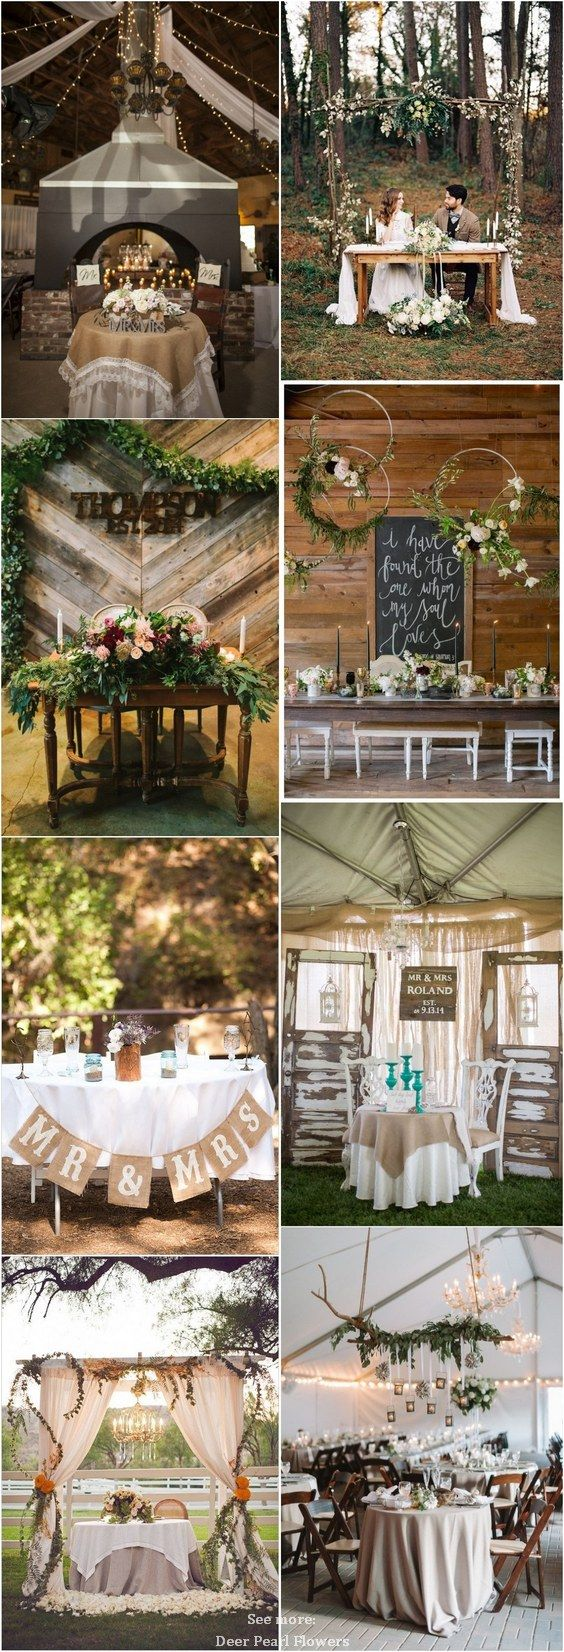 Rustic Country Wedding Ideas   Rustic Sweetheart Table Decor For Wedding  Reception / Http:/